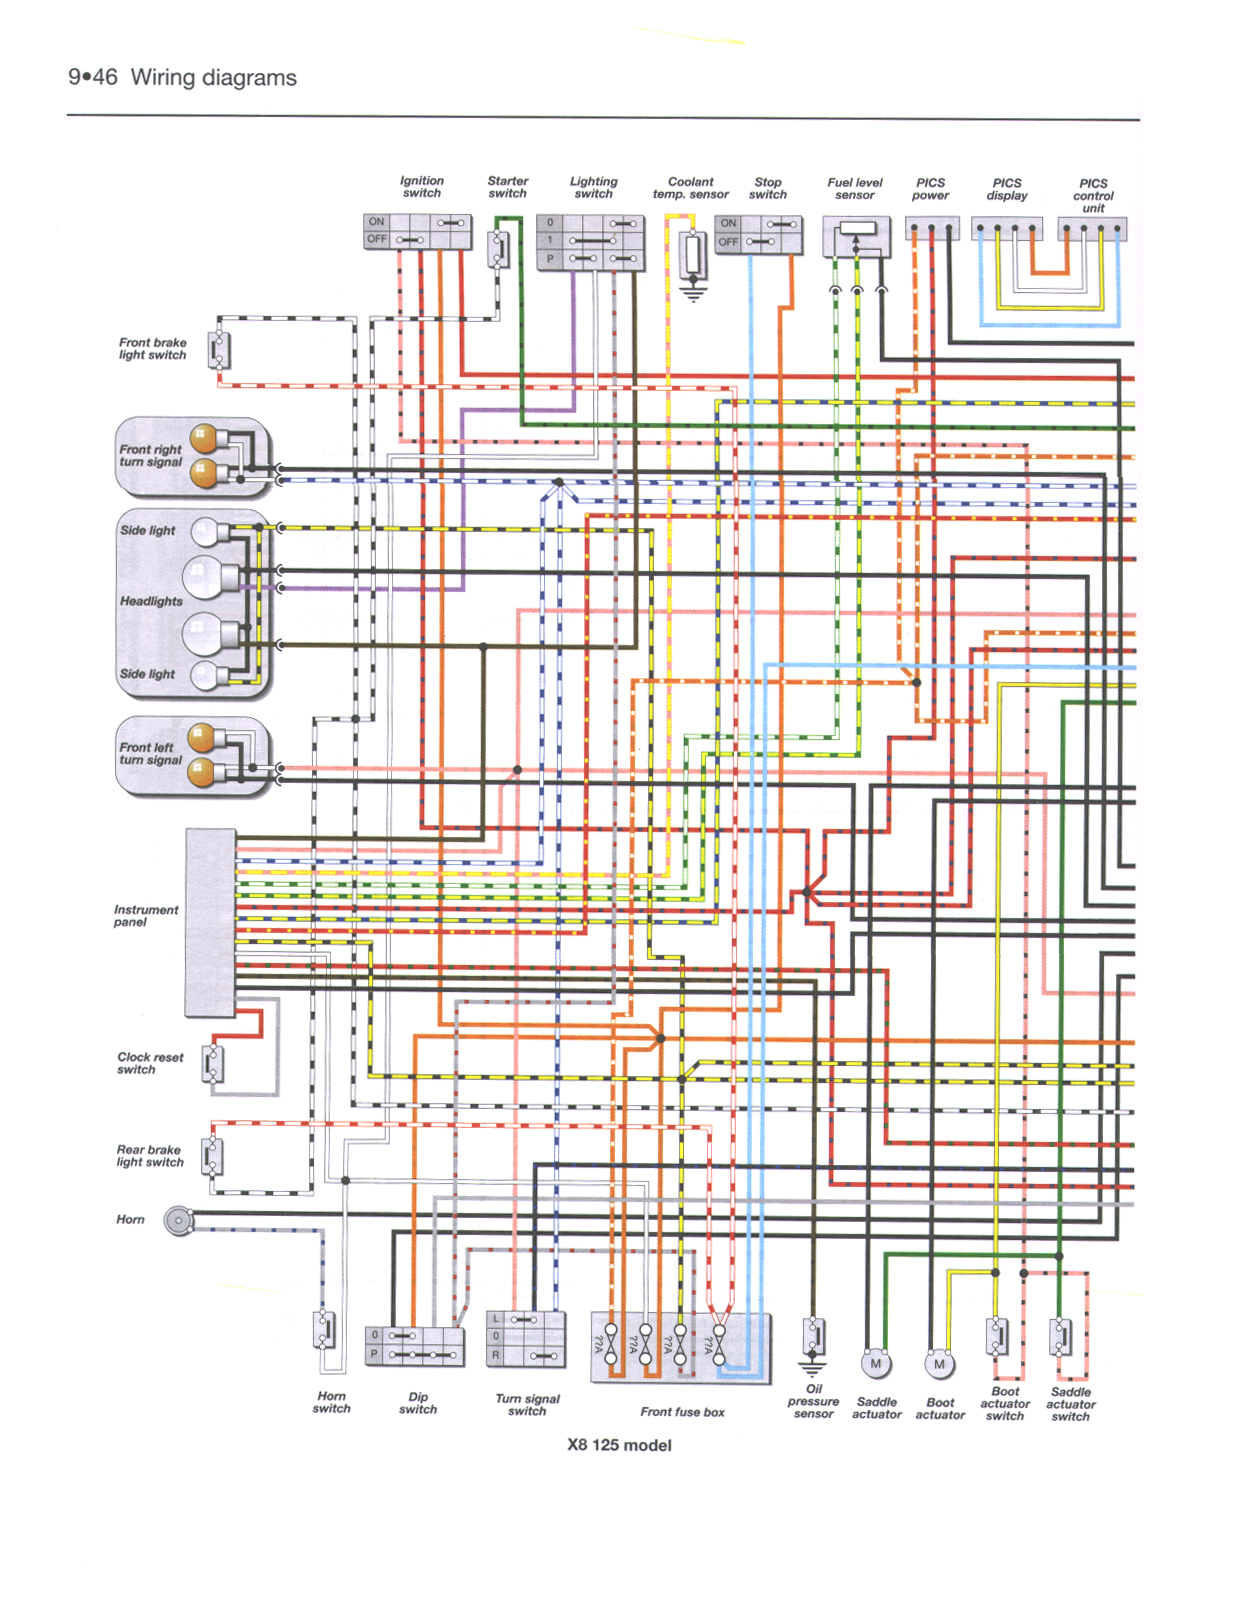 Index Of Manuals Circuits X8 Wiring Diagram